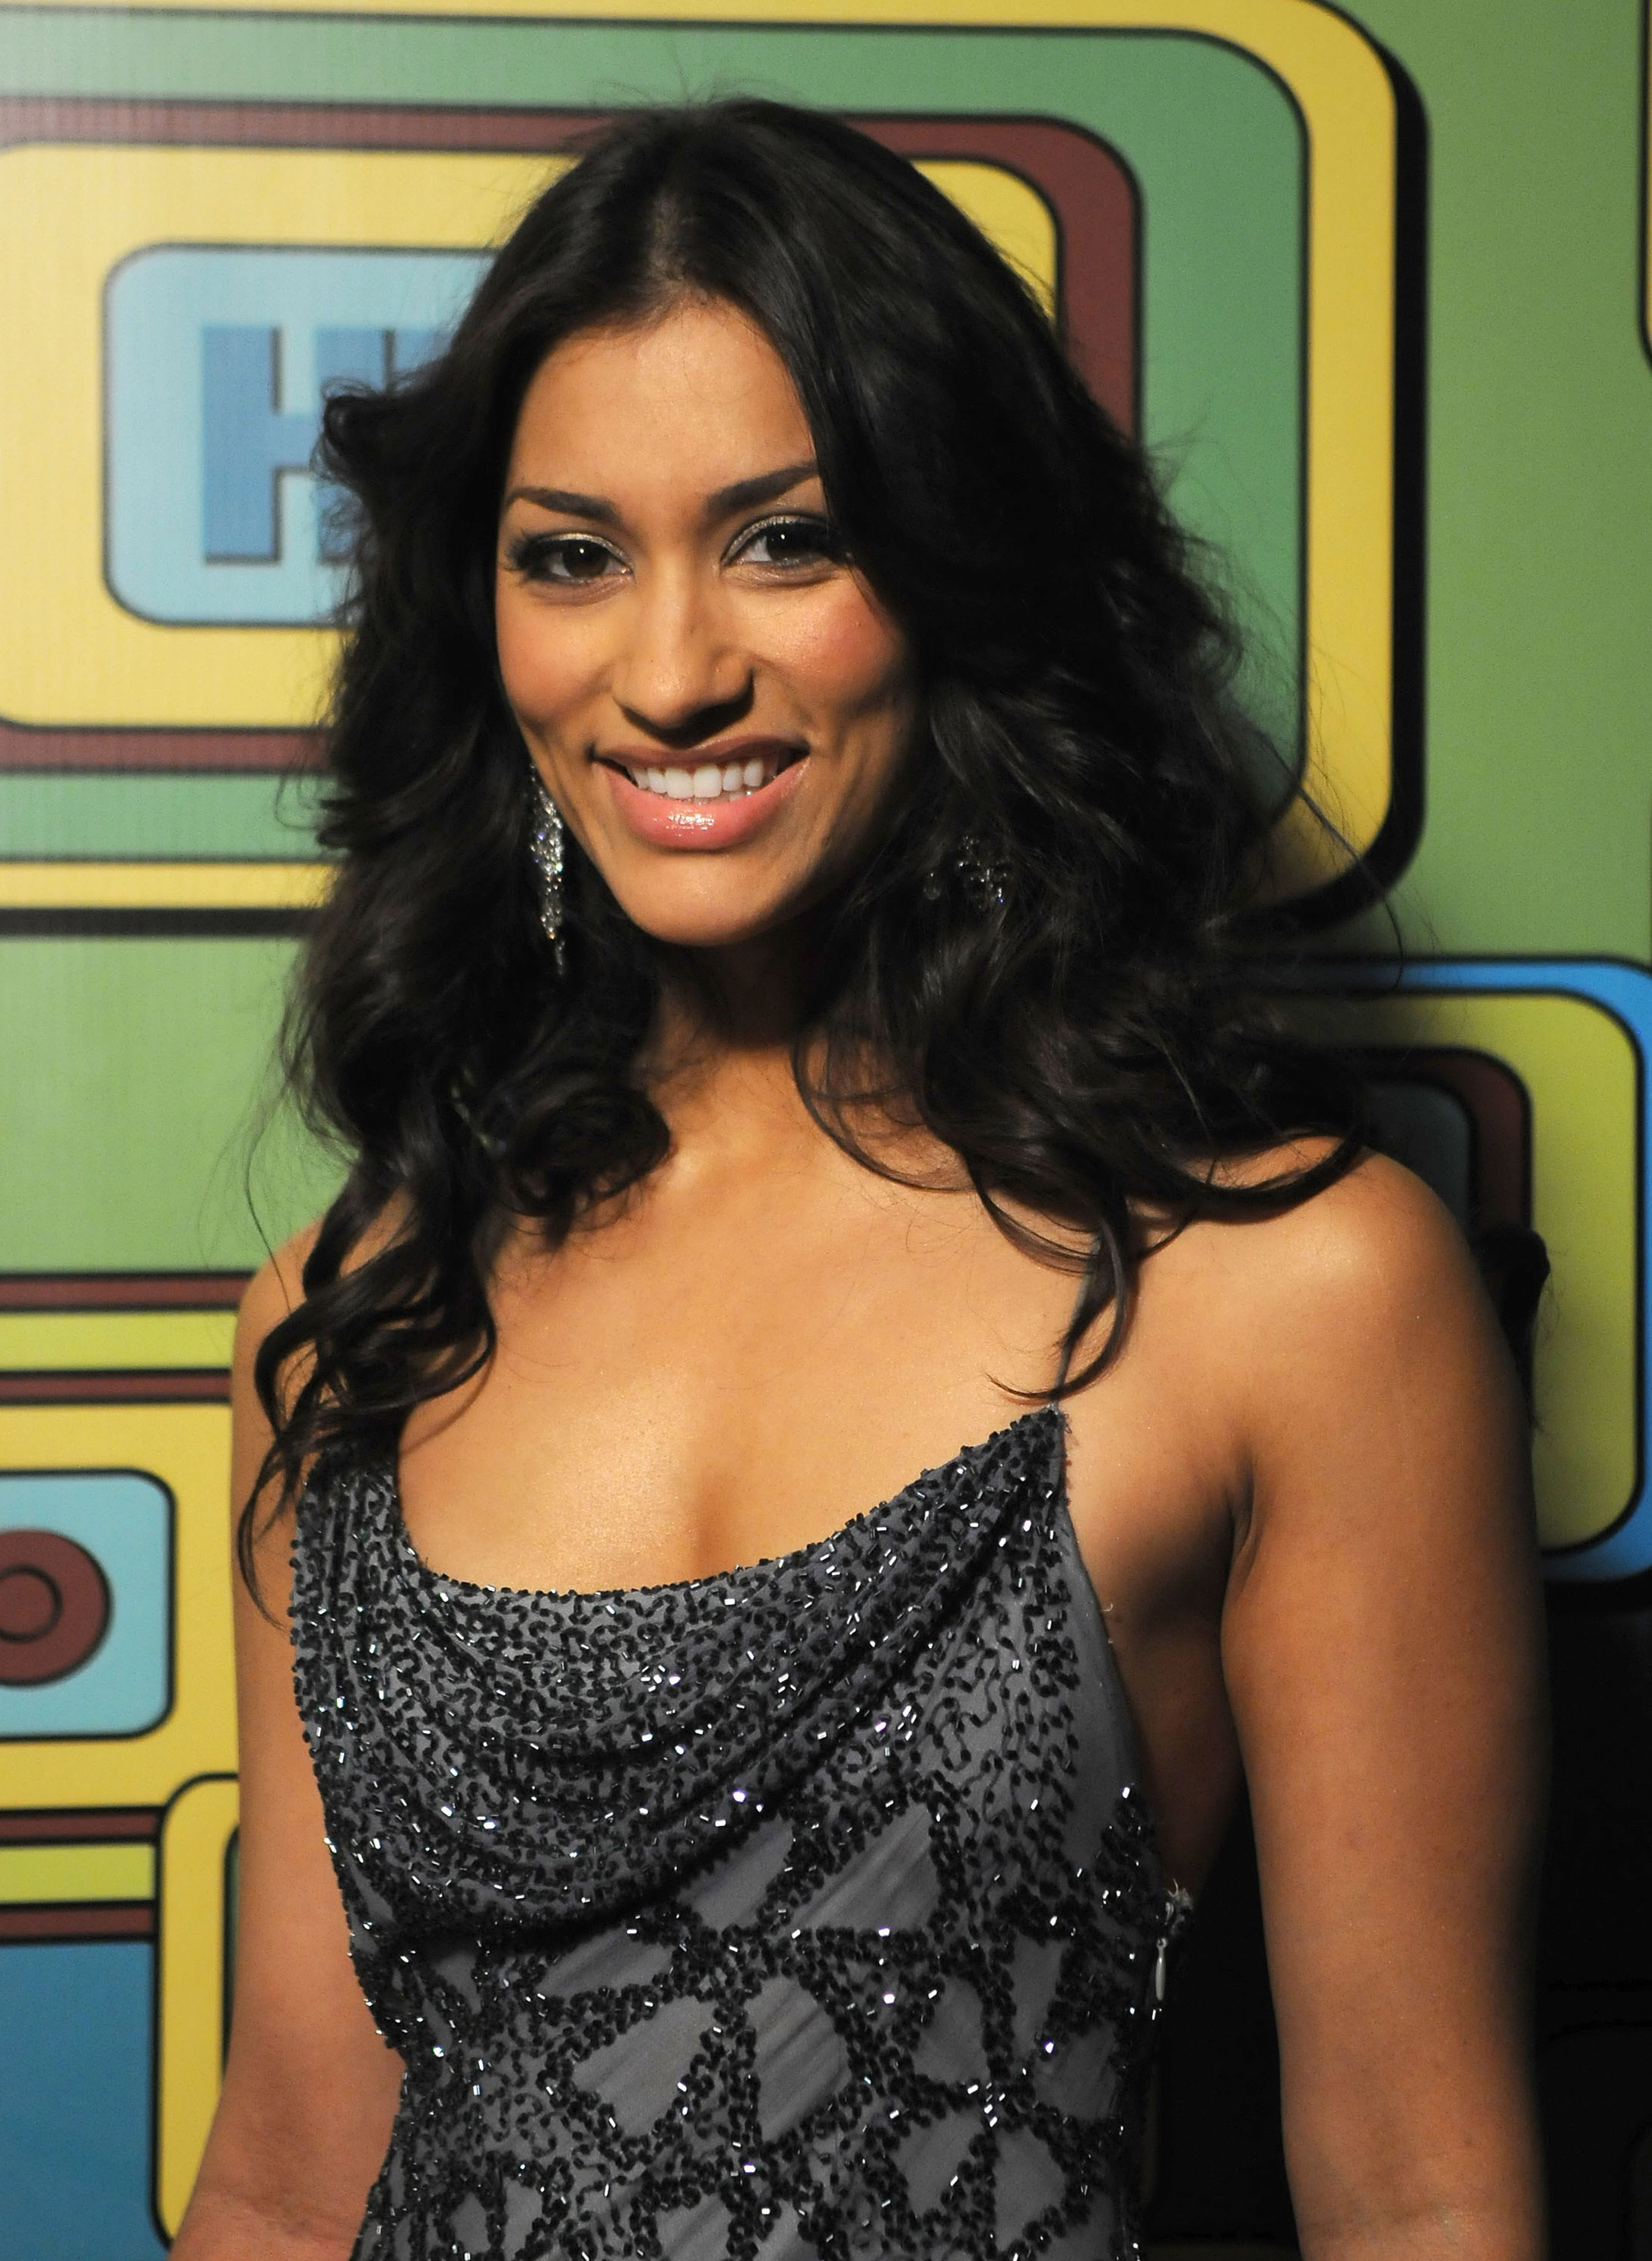 janina gavankar net worthjanina gavankar instagram, janina gavankar wikipedia, janina gavankar films, janina gavankar l word, janina gavankar interview, janina gavankar fansite, janina gavankar net worth, janina gavankar imdb, janina gavankar bellazon, janina gavankar height, janina gavankar 2016, janina gavankar sleepy hollow, janina gavankar tumblr, janina gavankar sister, janina gavankar, janina gavankar game of thrones, janina gavankar true blood, janina gavankar vampire diaries, janina gavankar twitter, janina gavankar bio